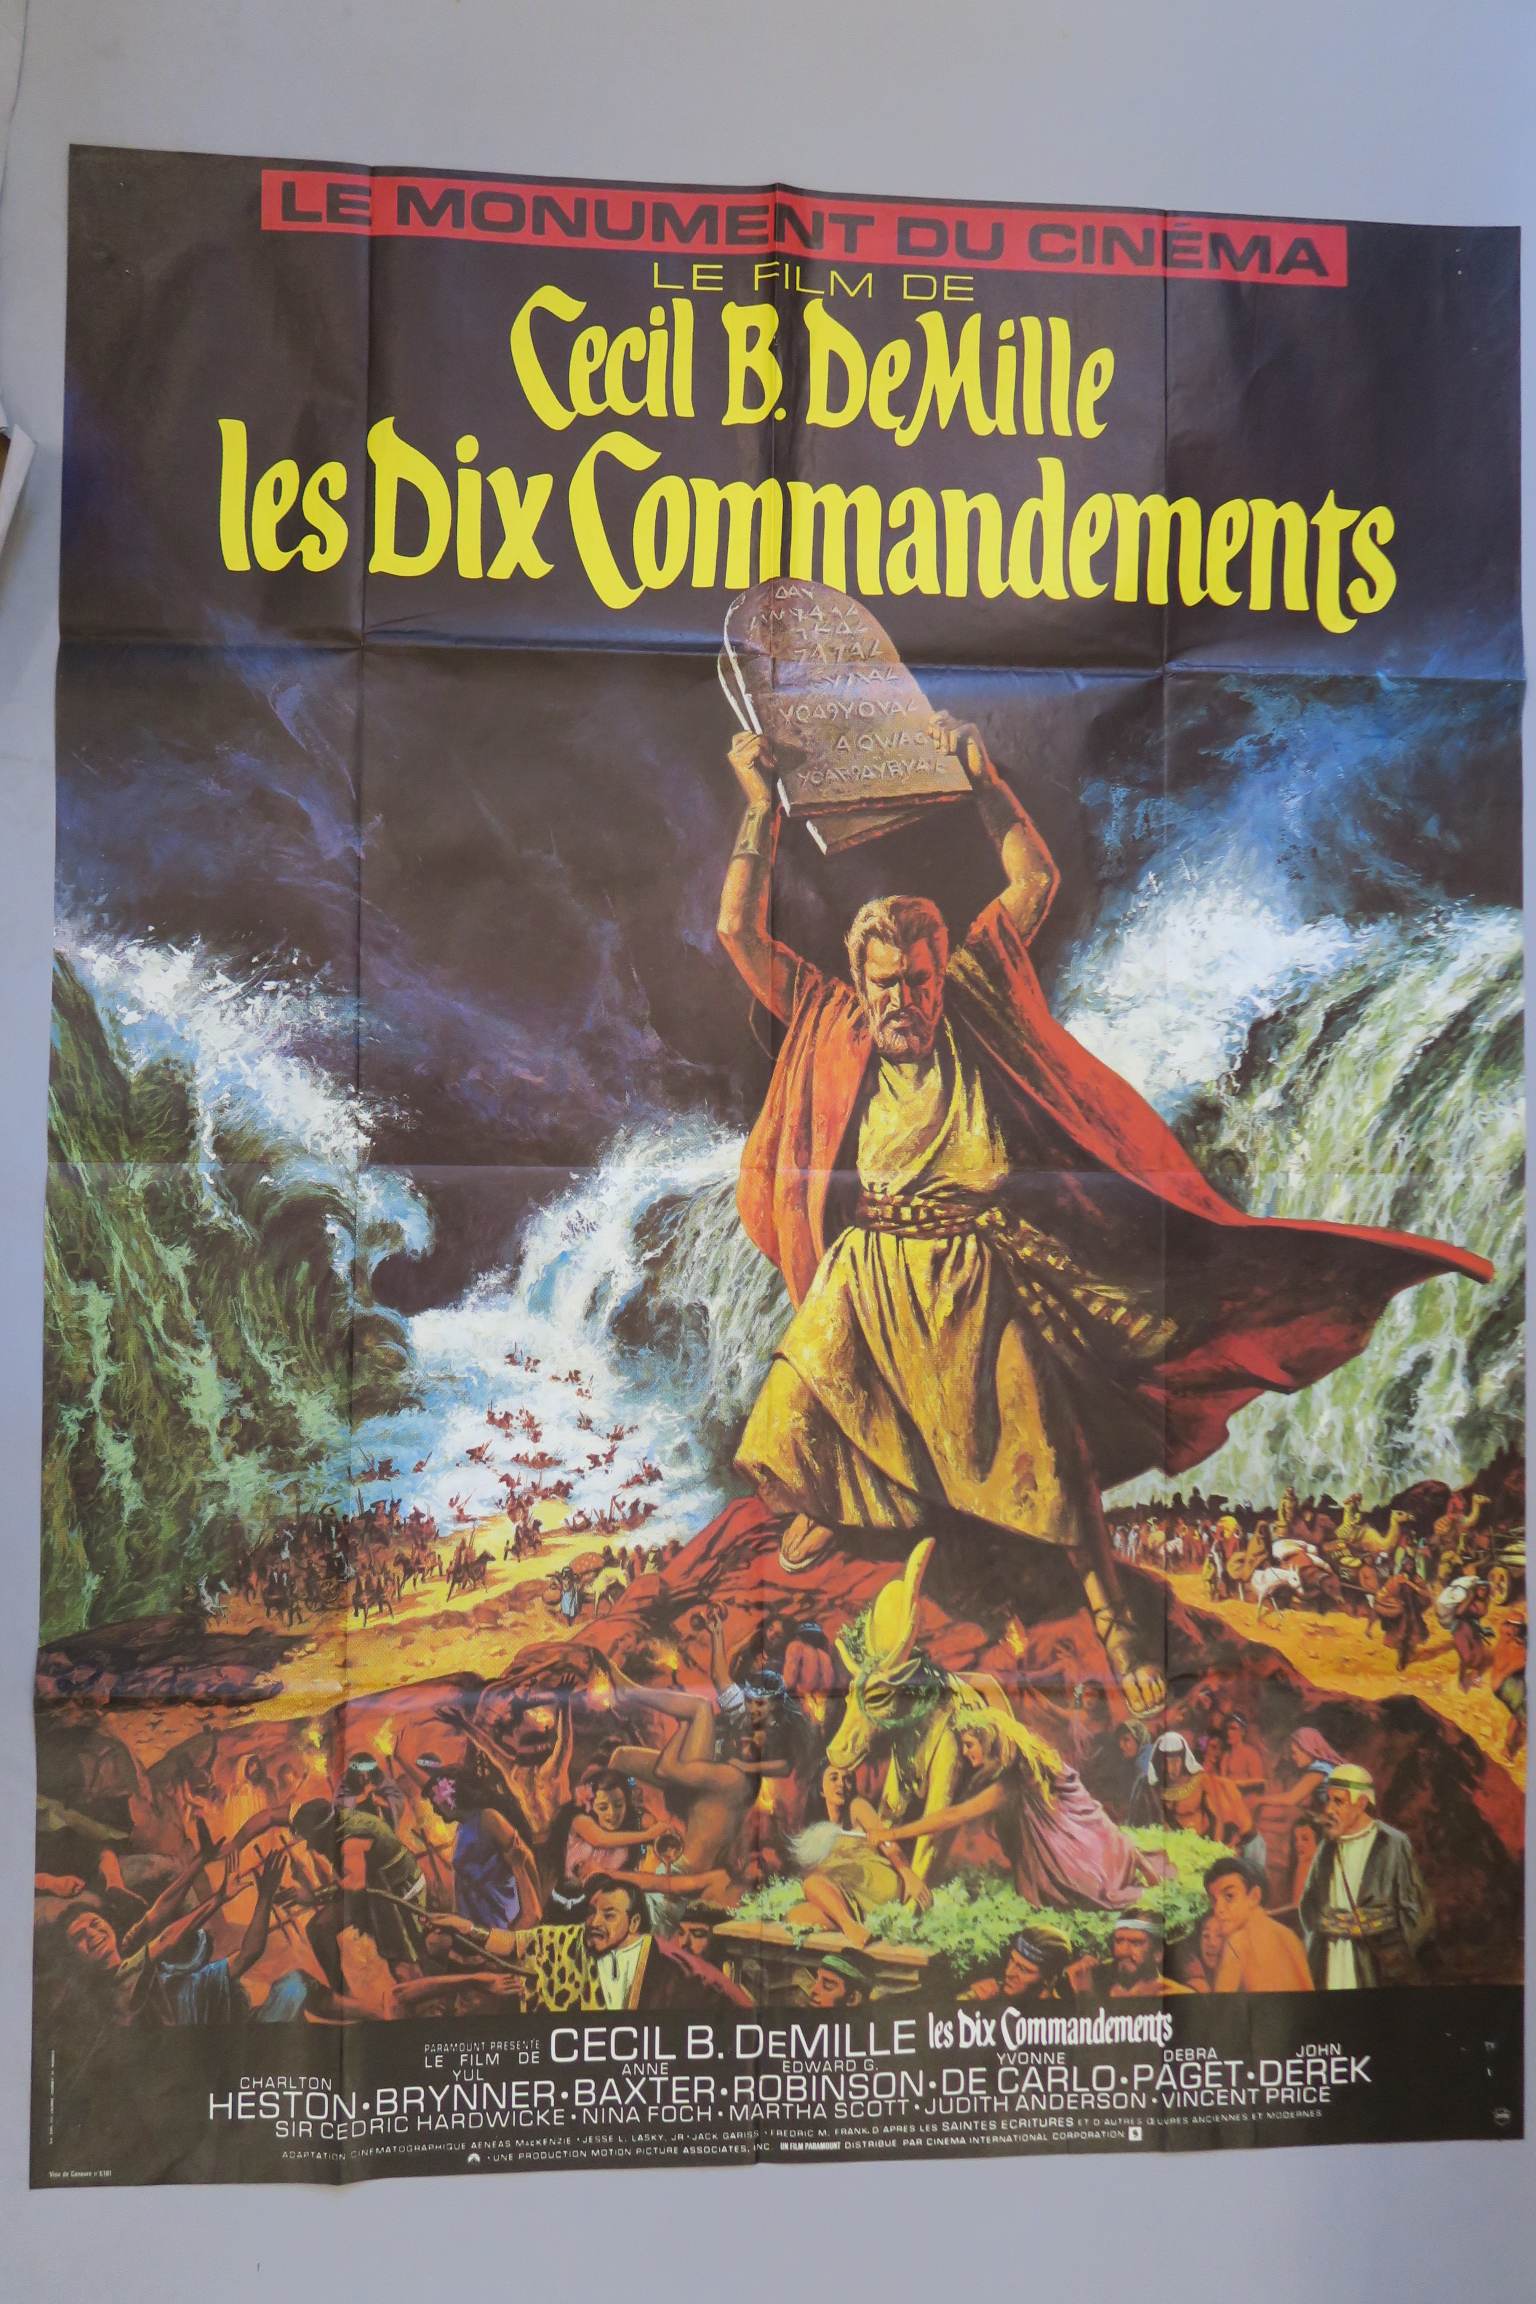 Lot 35 - 4 Charlton Heston French Grandes inc Ten Commandments, Counterpoint with art by Jean Mascii,